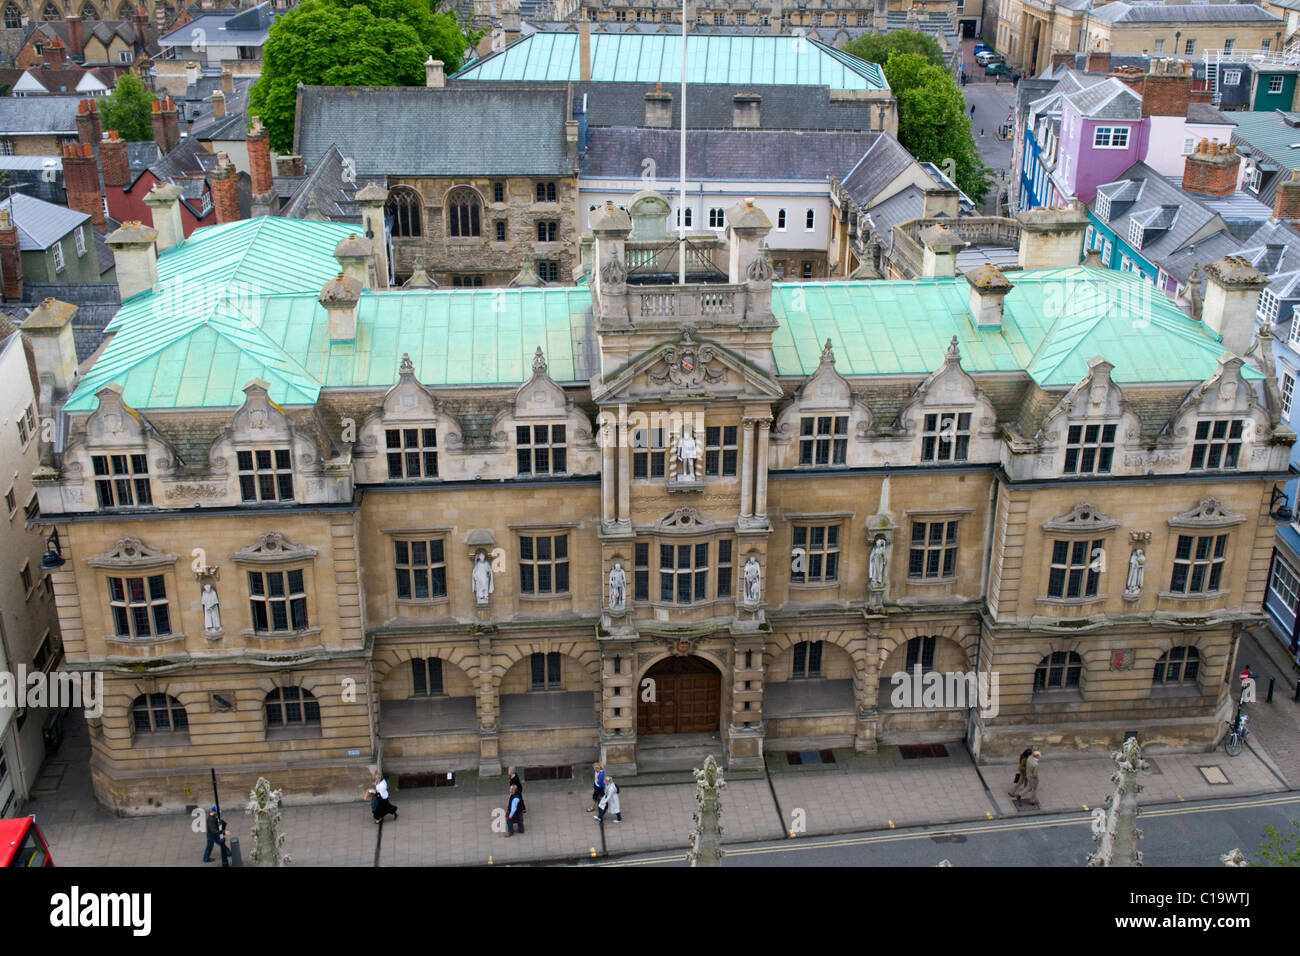 Aerial View of the Rhodes Building, Oriel College, Oxford - Stock Image